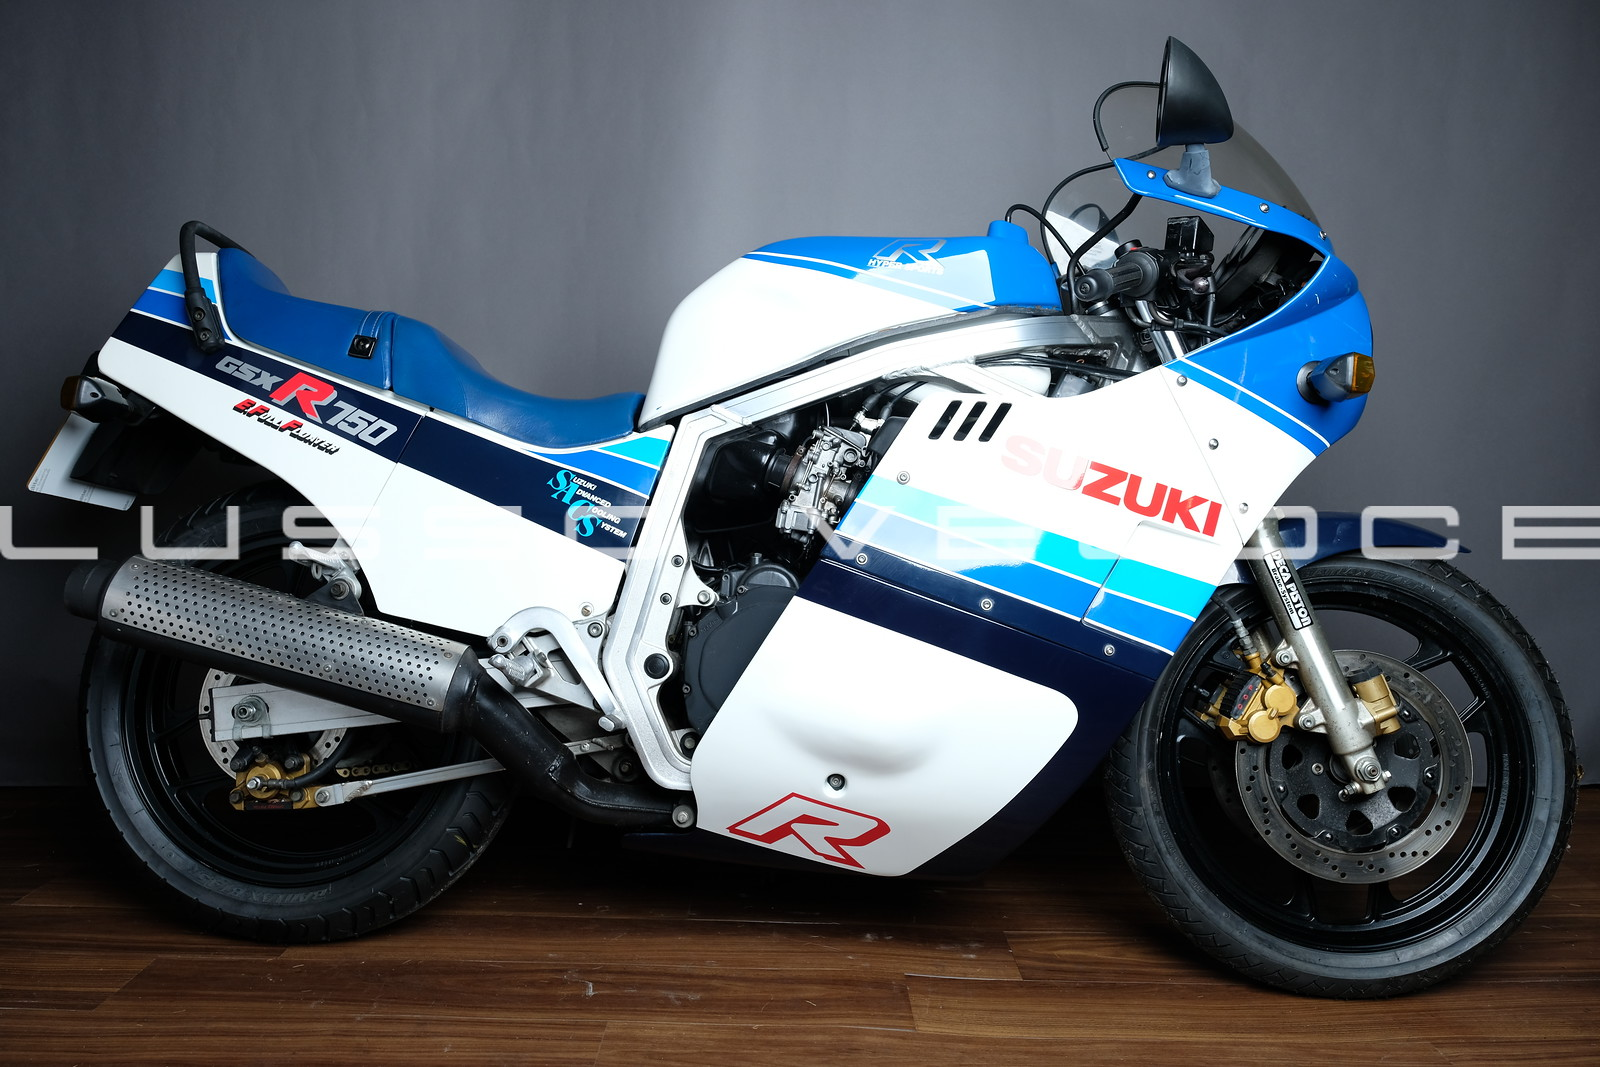 Suzuki GSXR 750 First Series 1985